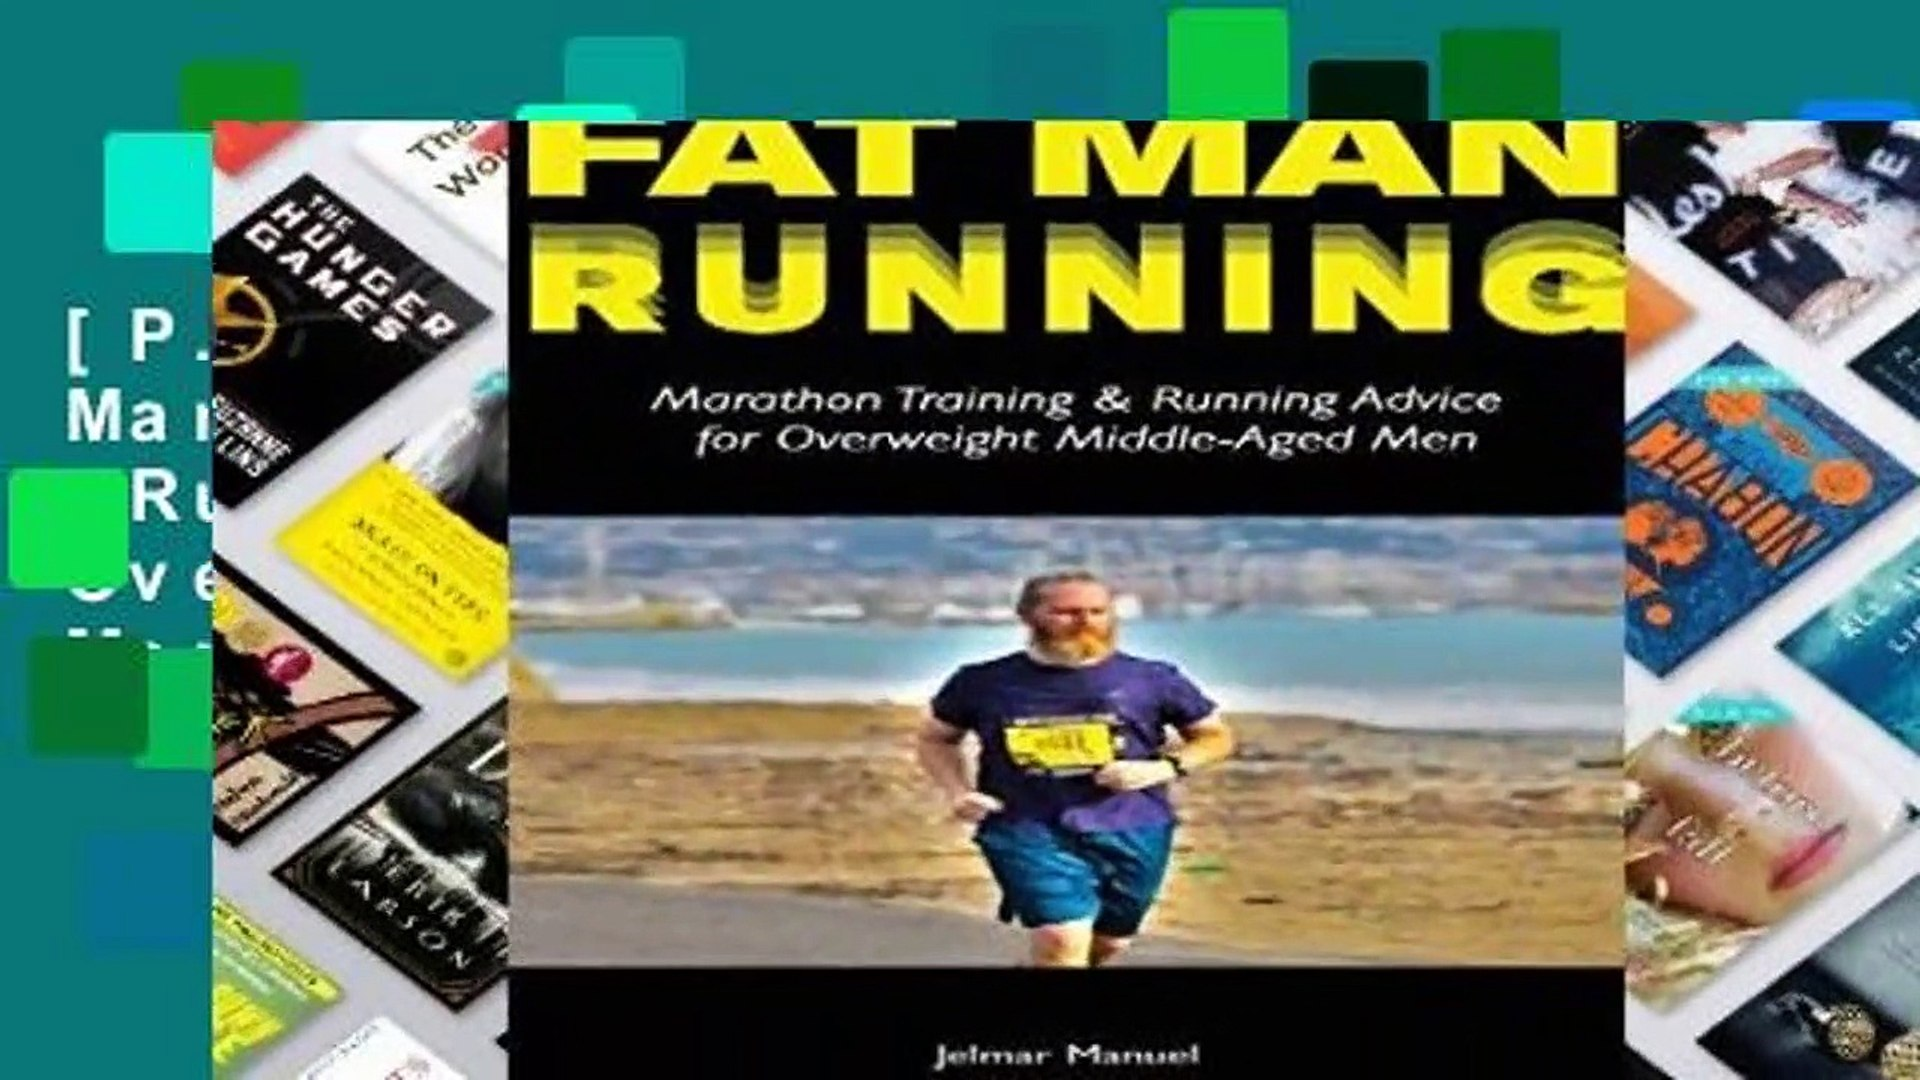 [P.D.F] Fat Man Running: Marathon Training   Running Advice for Overweight Middle-Aged Men [P.D.F]